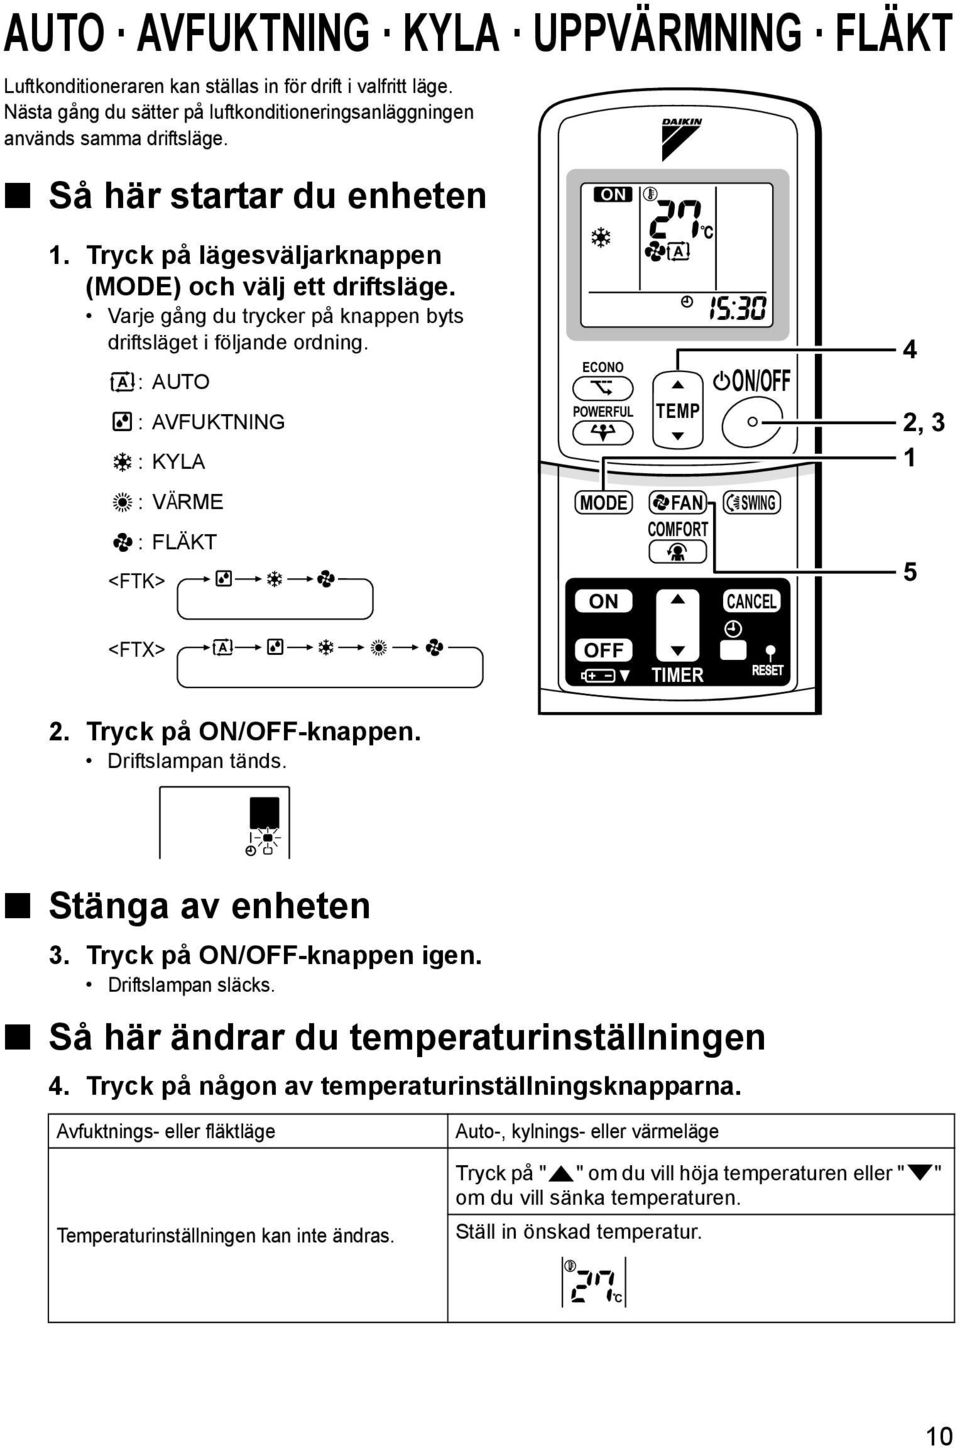 :AUTO :AVFUKTNING : KYLA :VÄRME :FLÄKT <FTK> ECONO POWERFUL TEMP ON/OFF MODE FAN SWING COMFORT ON CANCEL 4 2, 3 1 5 <FTX> 2. Tryck på ON/OFF-knappen. Driftslampan tänds. OFF TIMER Stänga av enheten 3.